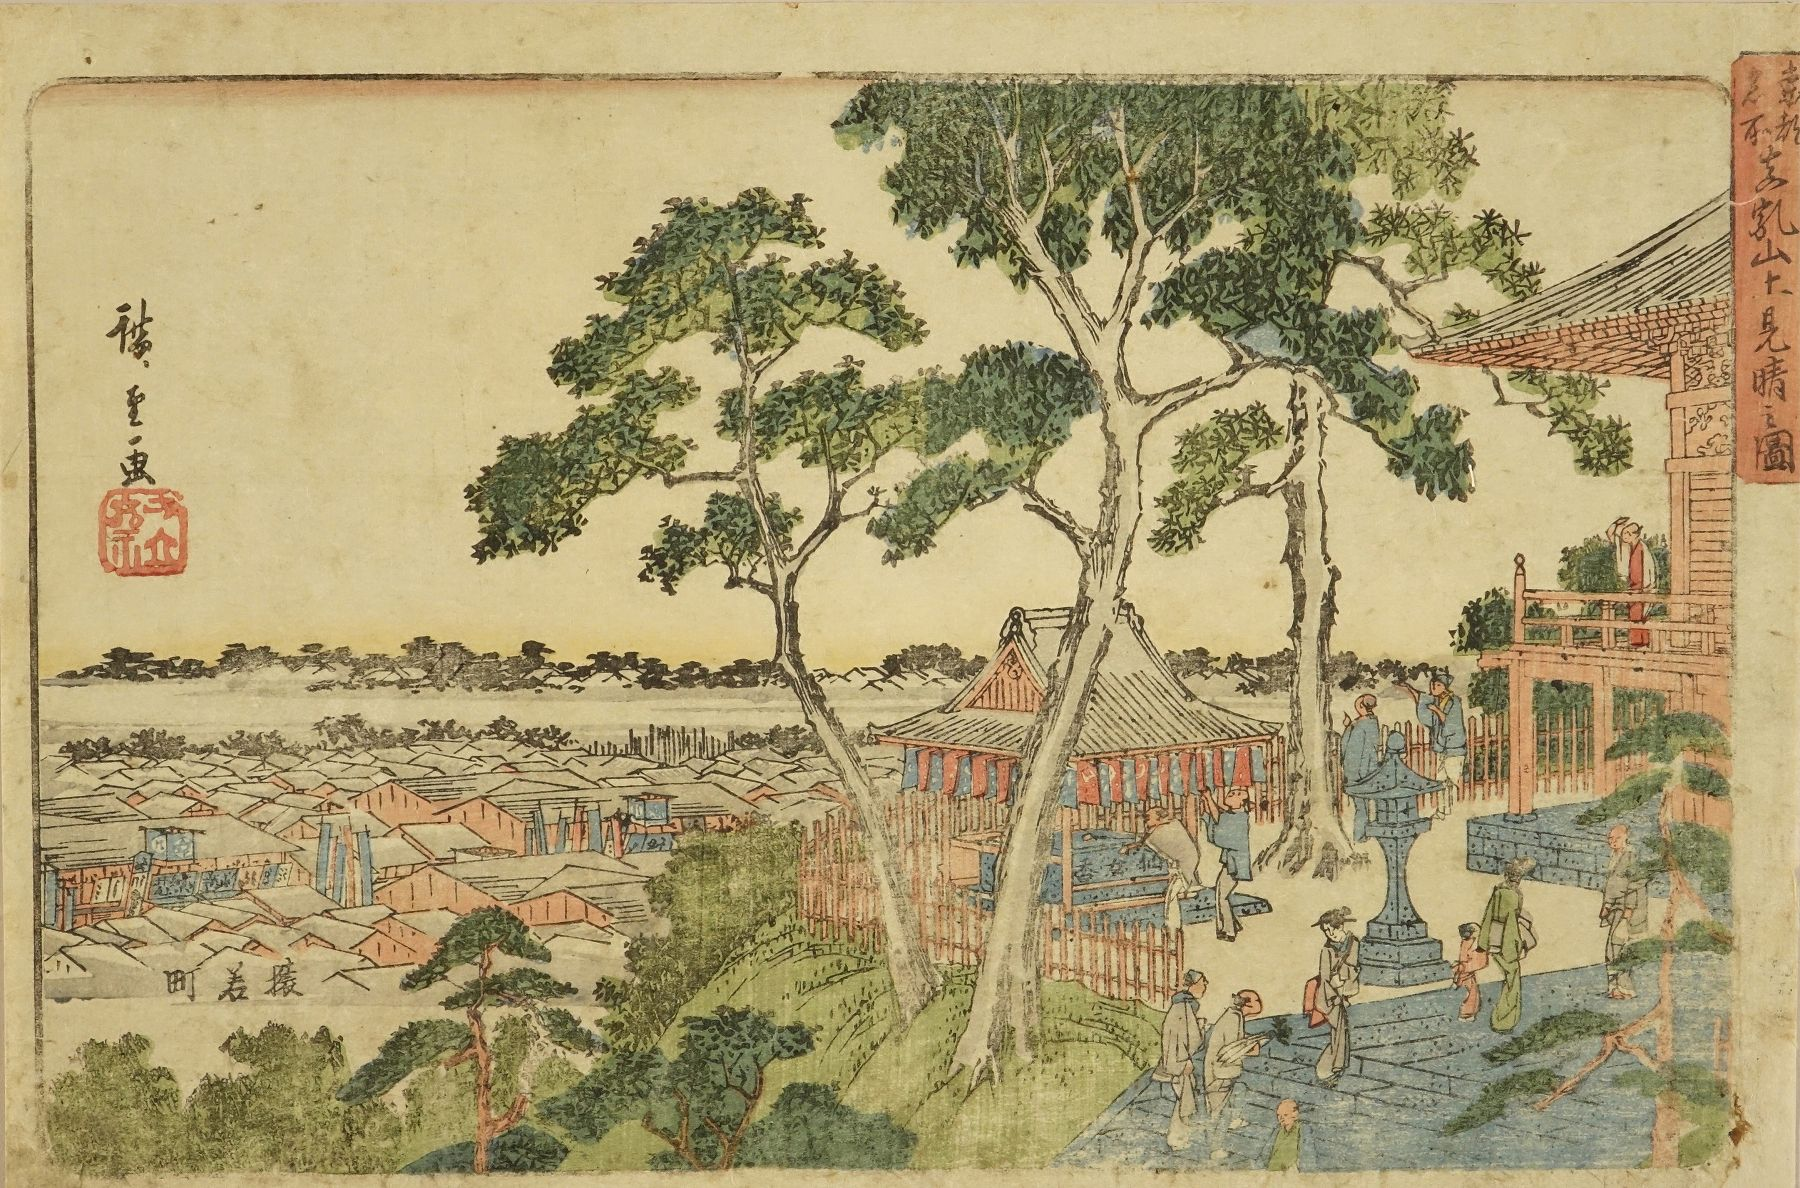 HIROSHIGE View from Matsuchiyama, from <i>Toto meisho</i> (Fmaous places of Edo)